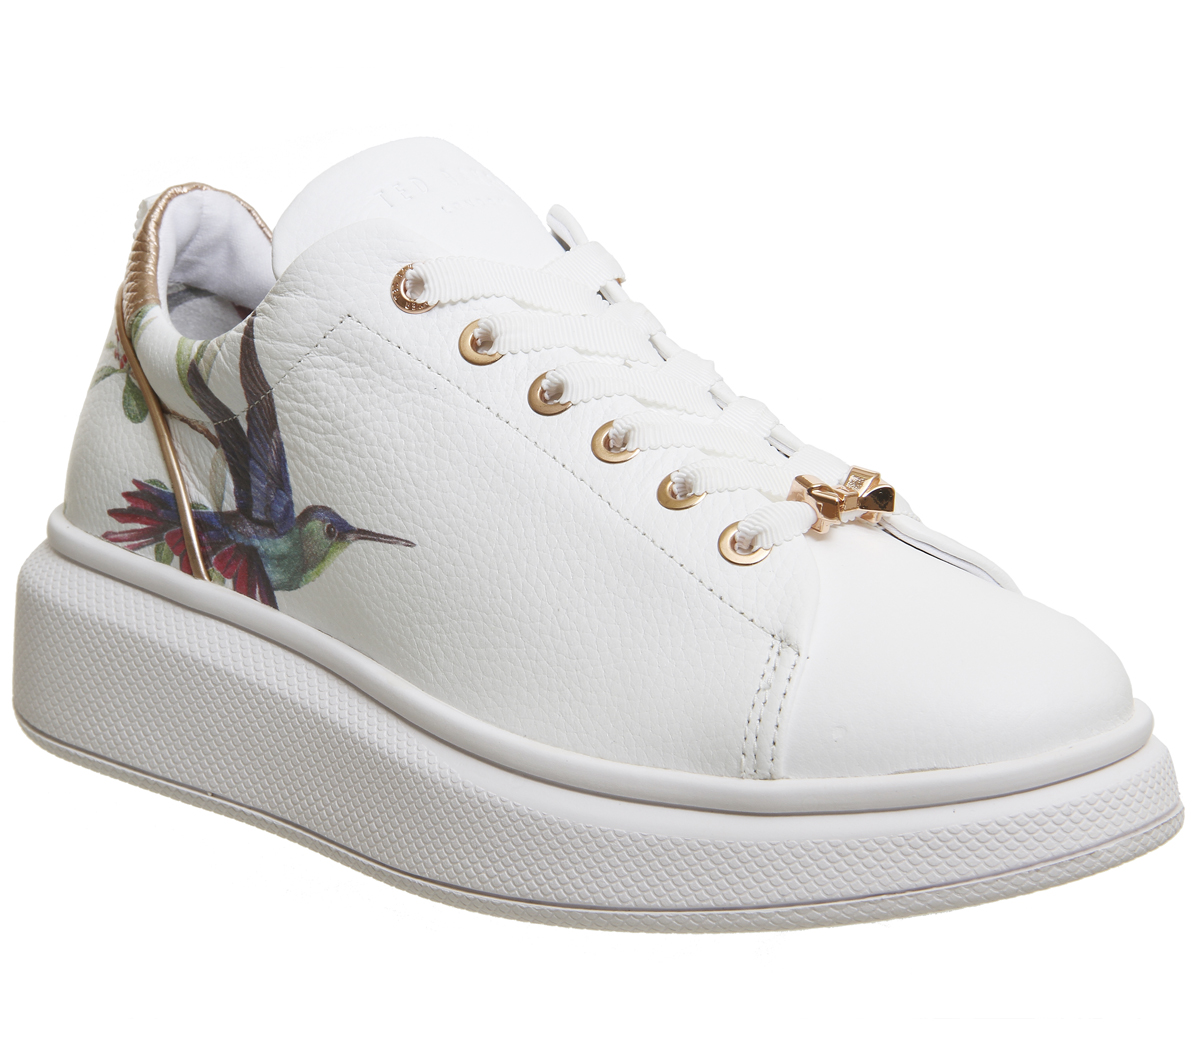 9a433b9d7c35 Sentinel Womens Ted Baker Ailbe Sneakers Highgrove Hummingbird Trainers  Shoes